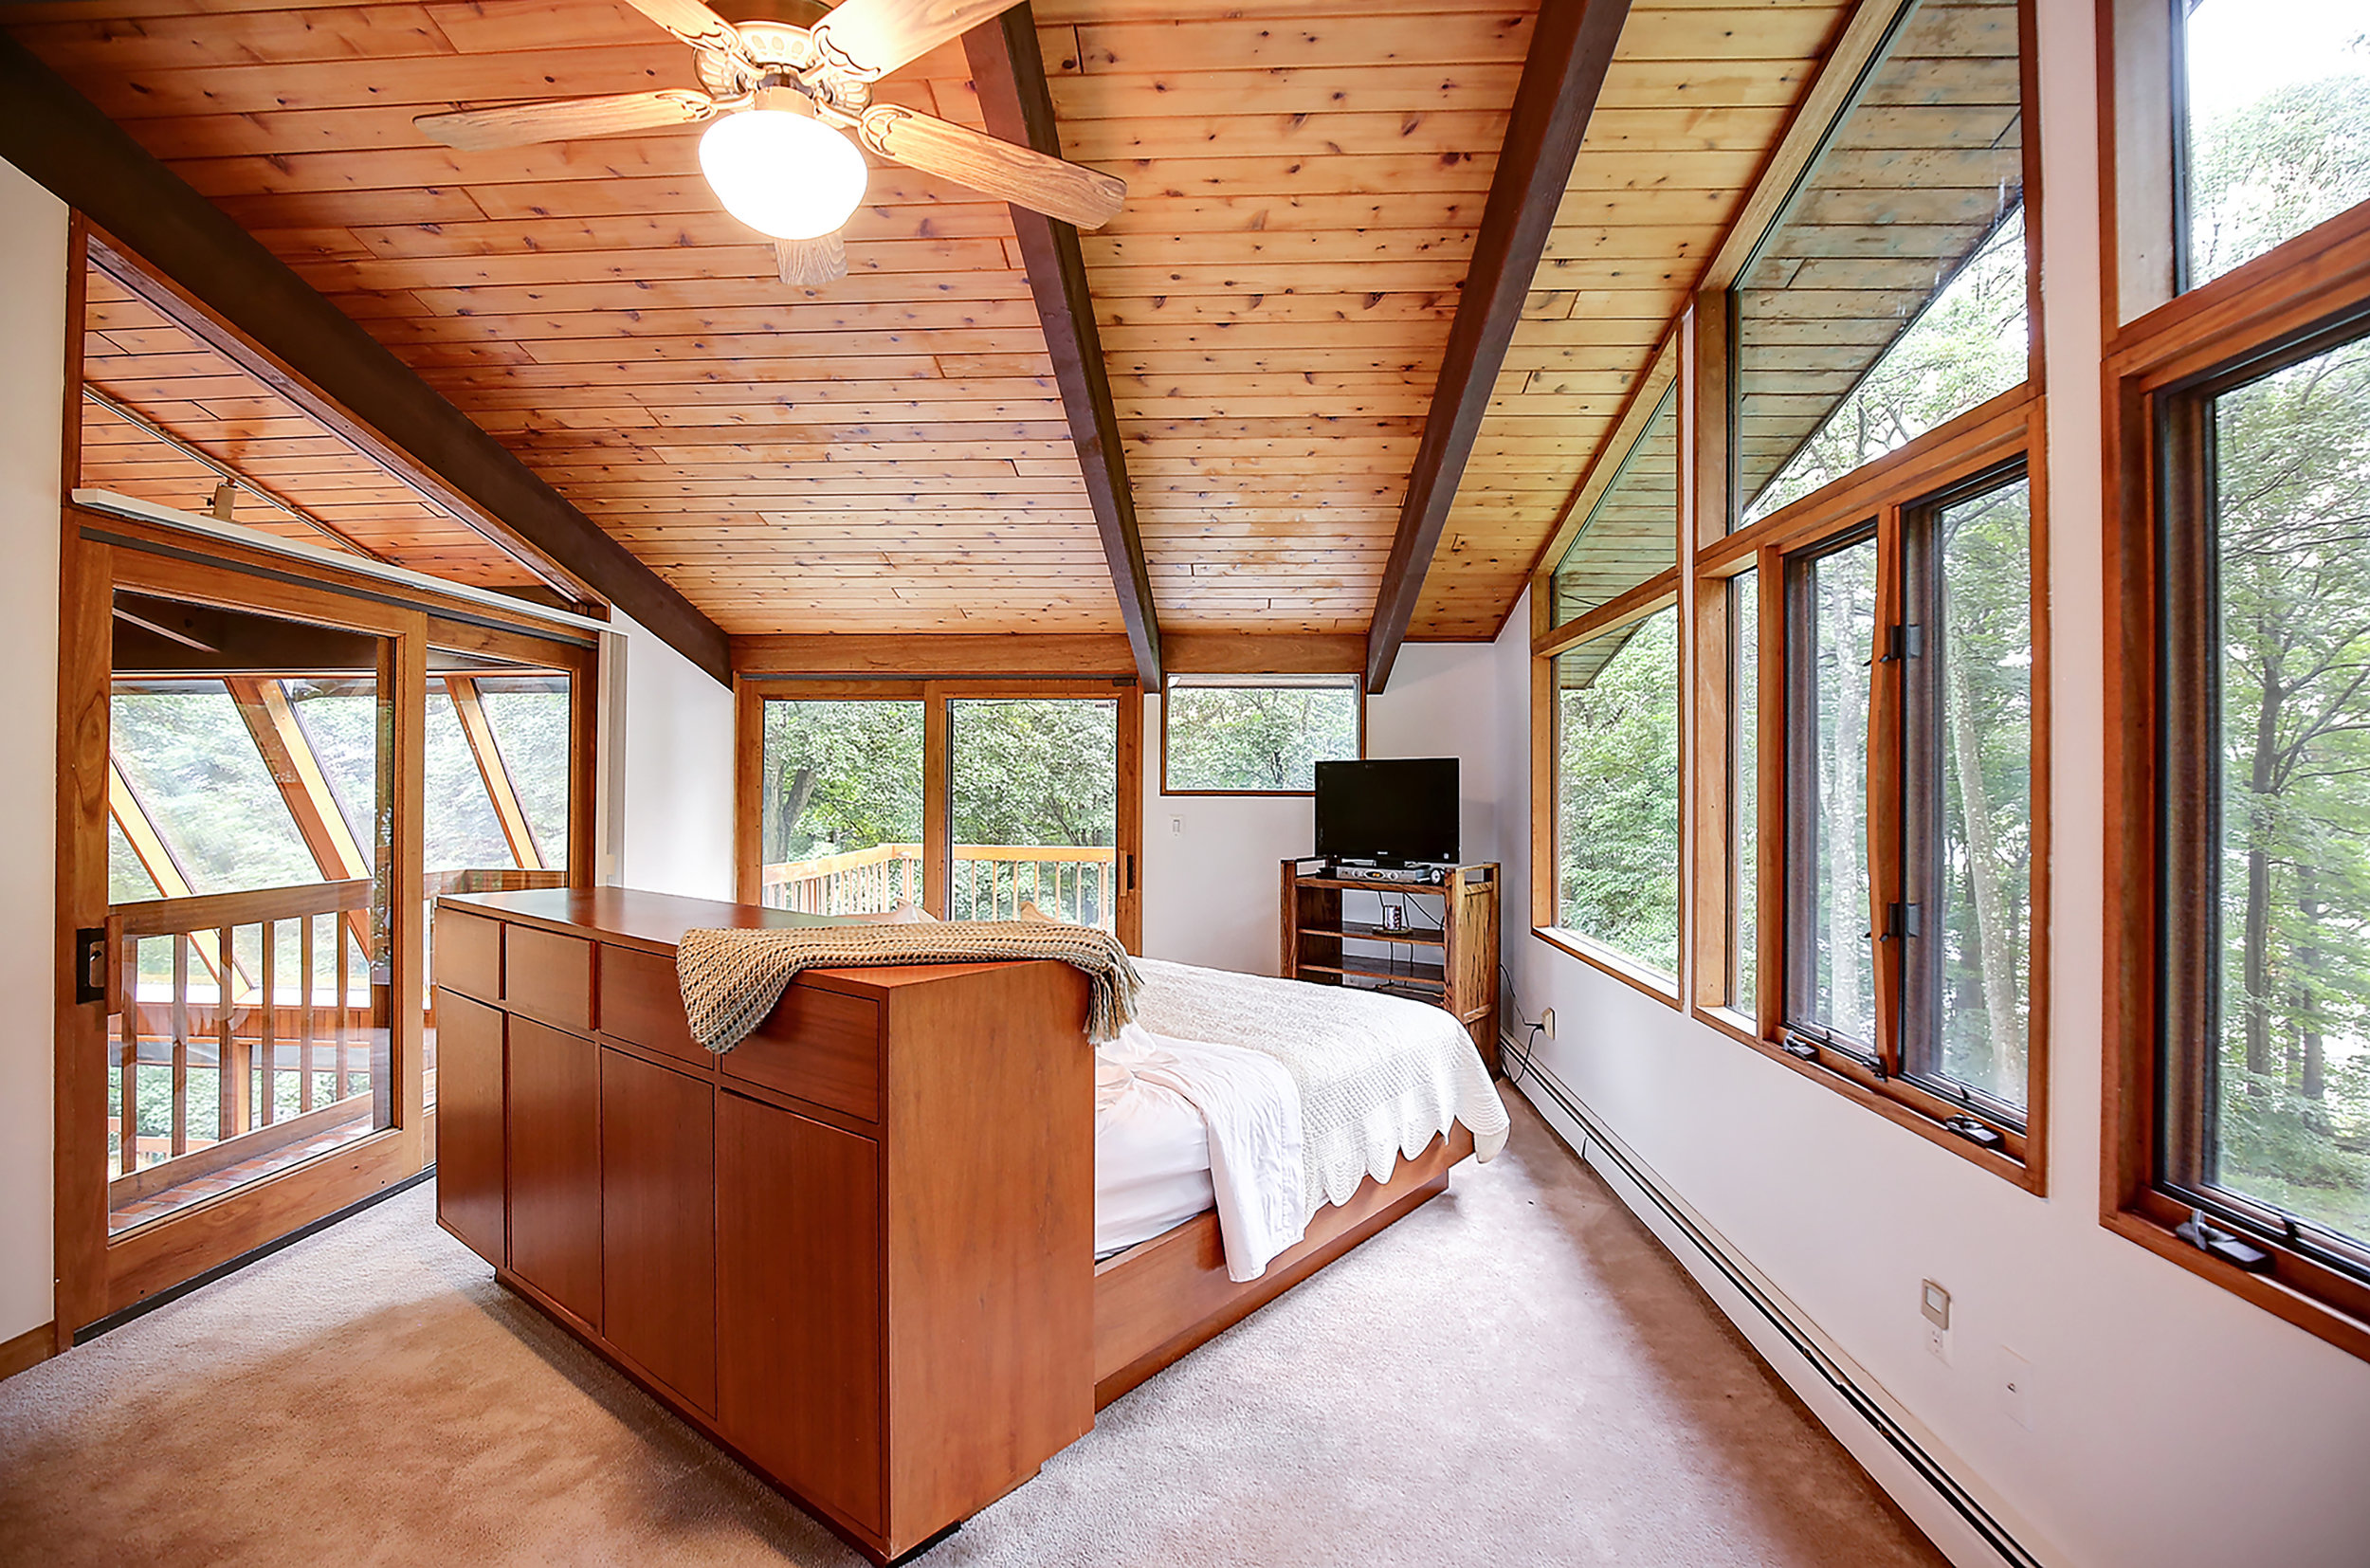 5Sleep nestled  in the treetops in the Master suite  the IMG_6075_6_7.jpg